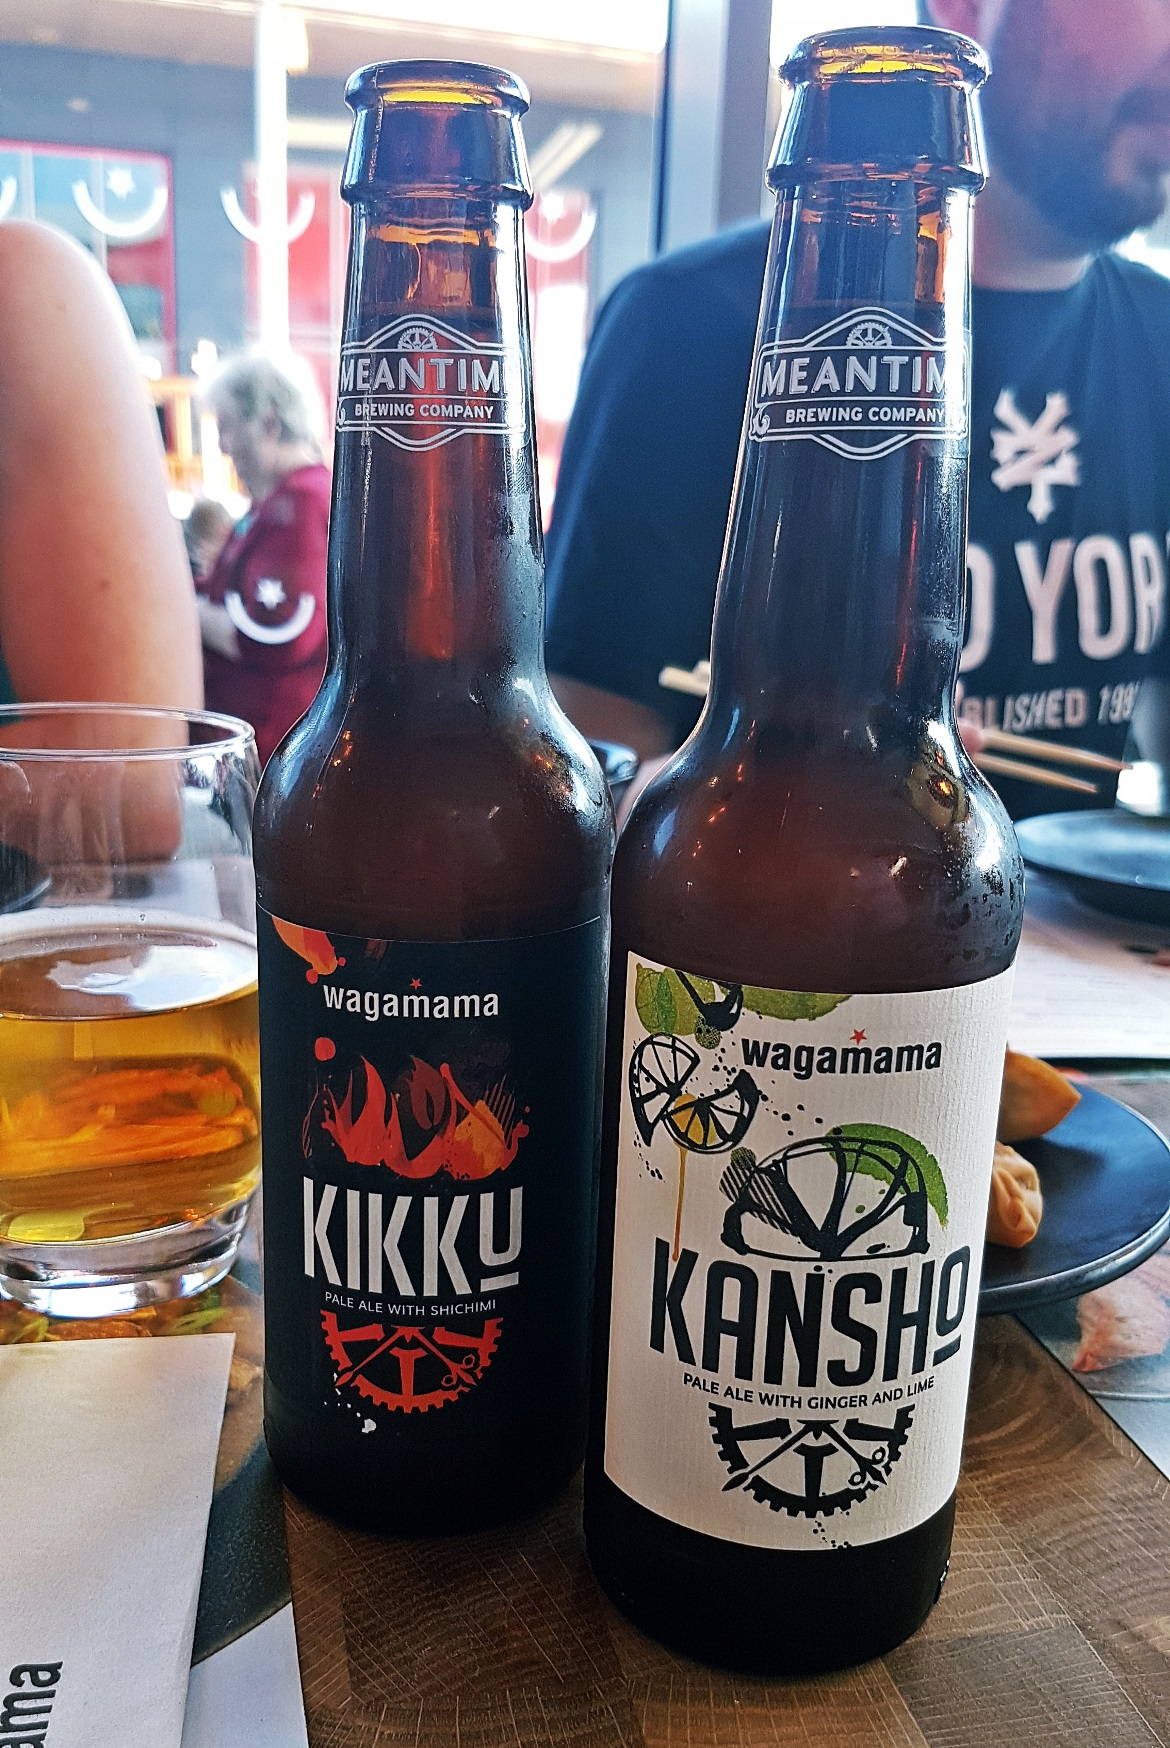 Kikku and Kansho beers - Wagamama Menu Pairing, Review by BeckyBecky Blogs